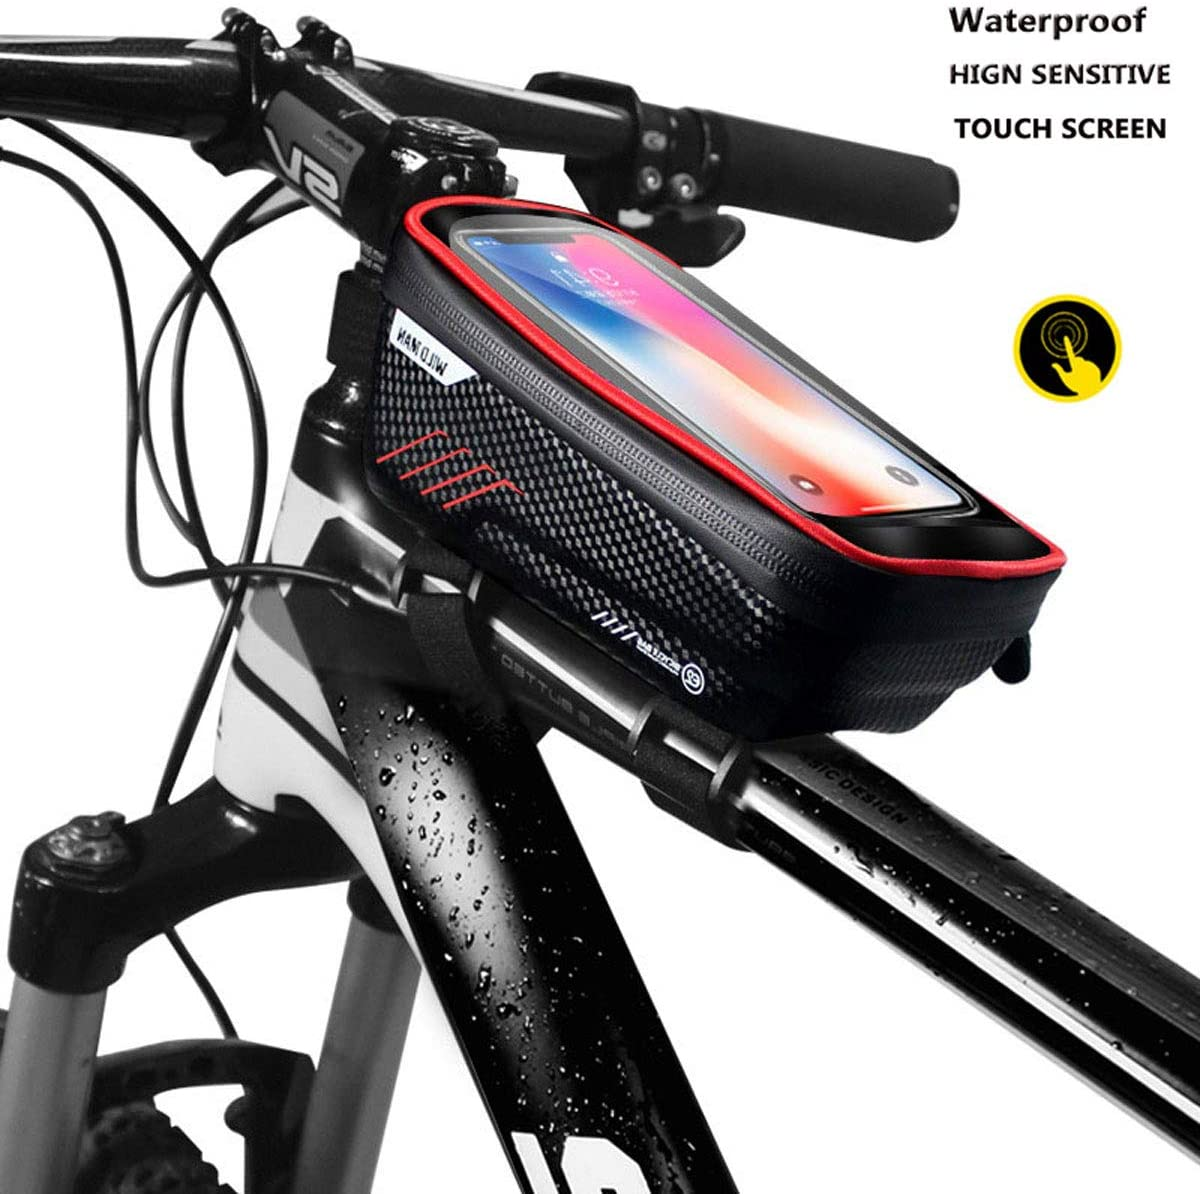 """TiKeDa Bike Phone Mount Handlebar Bags with Touch Screen,Waterproof Front Frame Top Tube Storage Bag for iPhone 11 X XS Max XR 8 7 6 Plus SE 2020,Fit Cell Phone Under 6.5"""""""